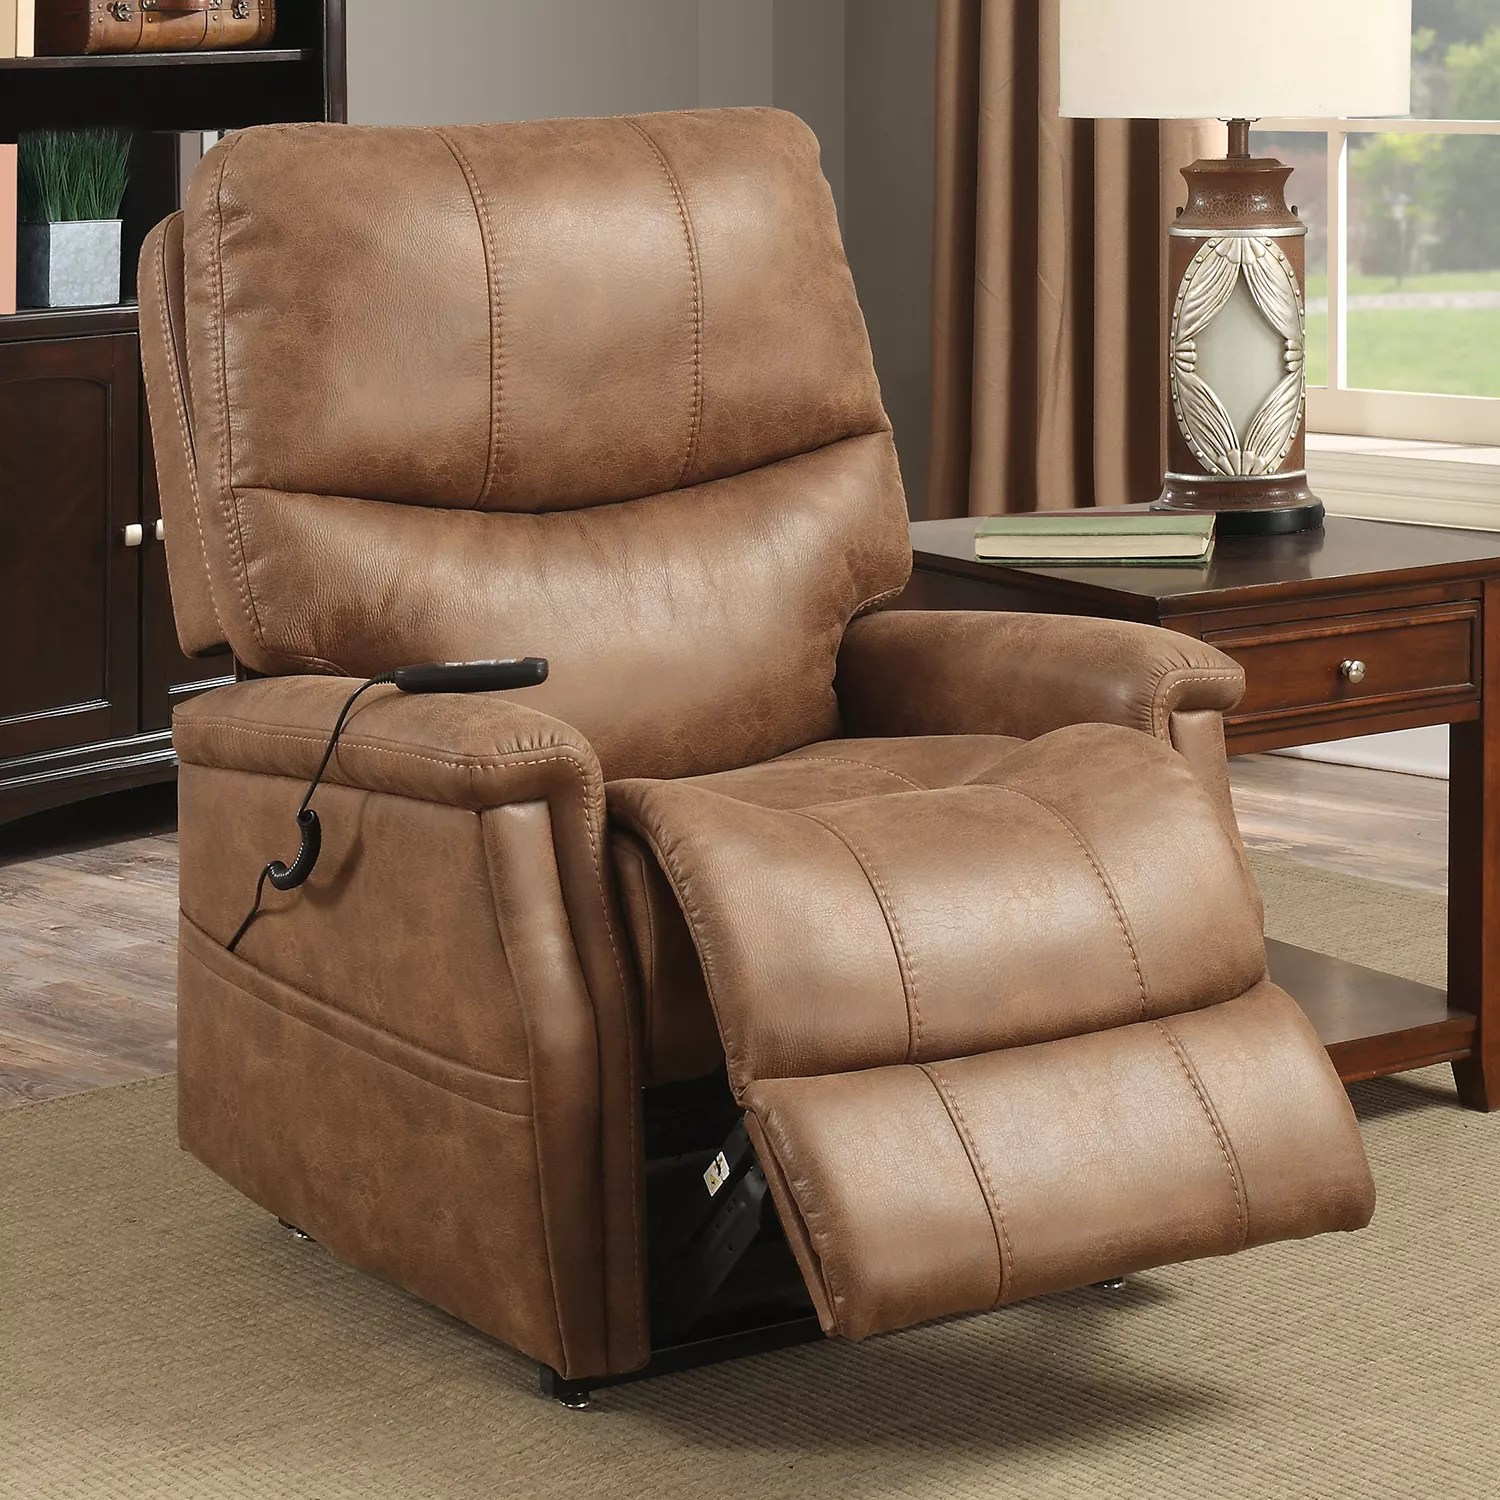 accent chair recliner wicker desk recliners chairs furniture kohl s pulaski remote lift arm